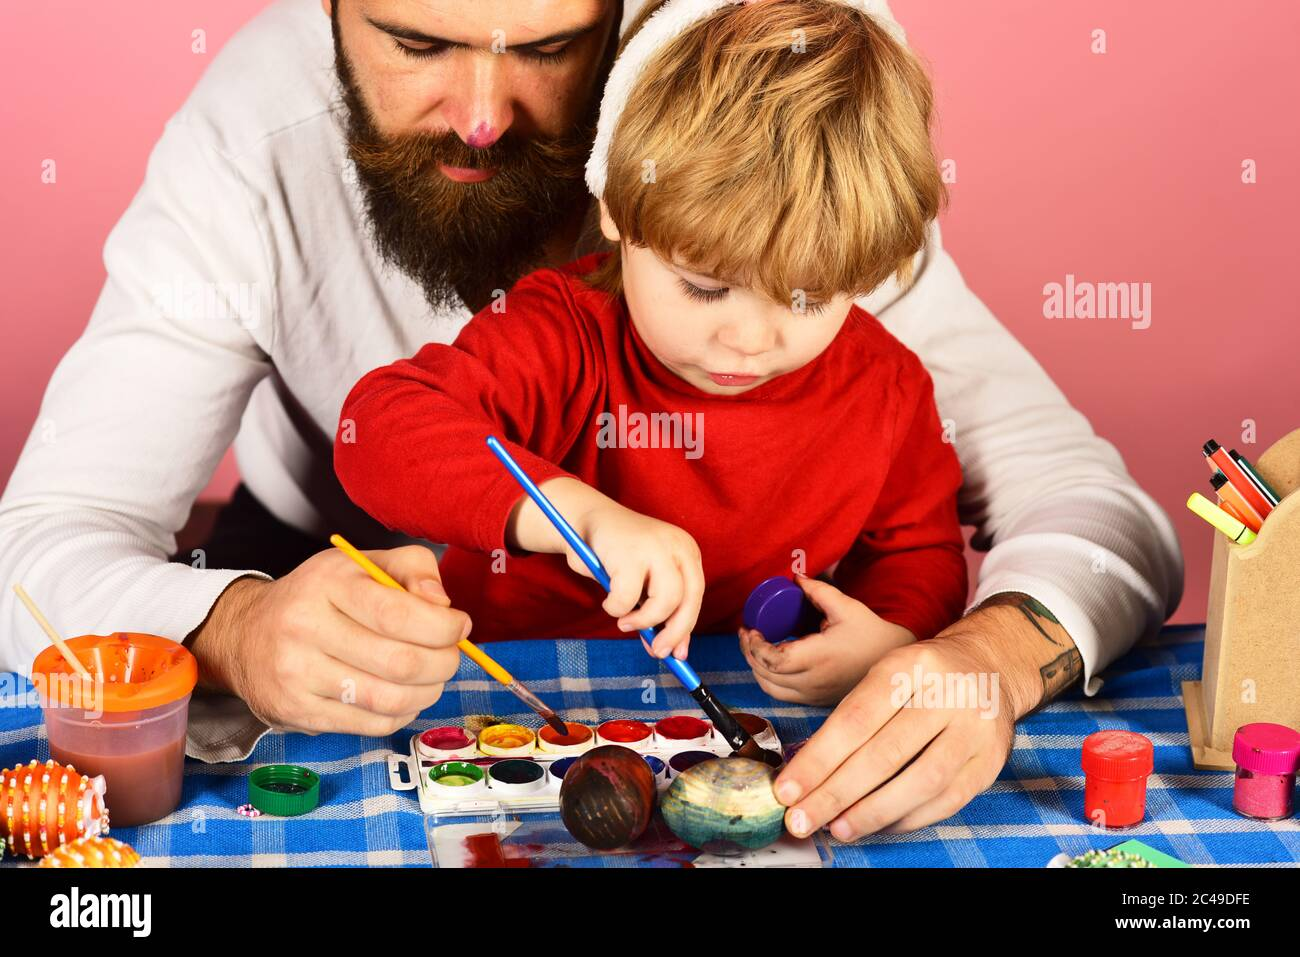 Easter celebration and joy concept. Man with beard and little boy painting eggs for Easter on pink background. Father and son preparing for holiday. Dad with painted nose make decorations Stock Photo